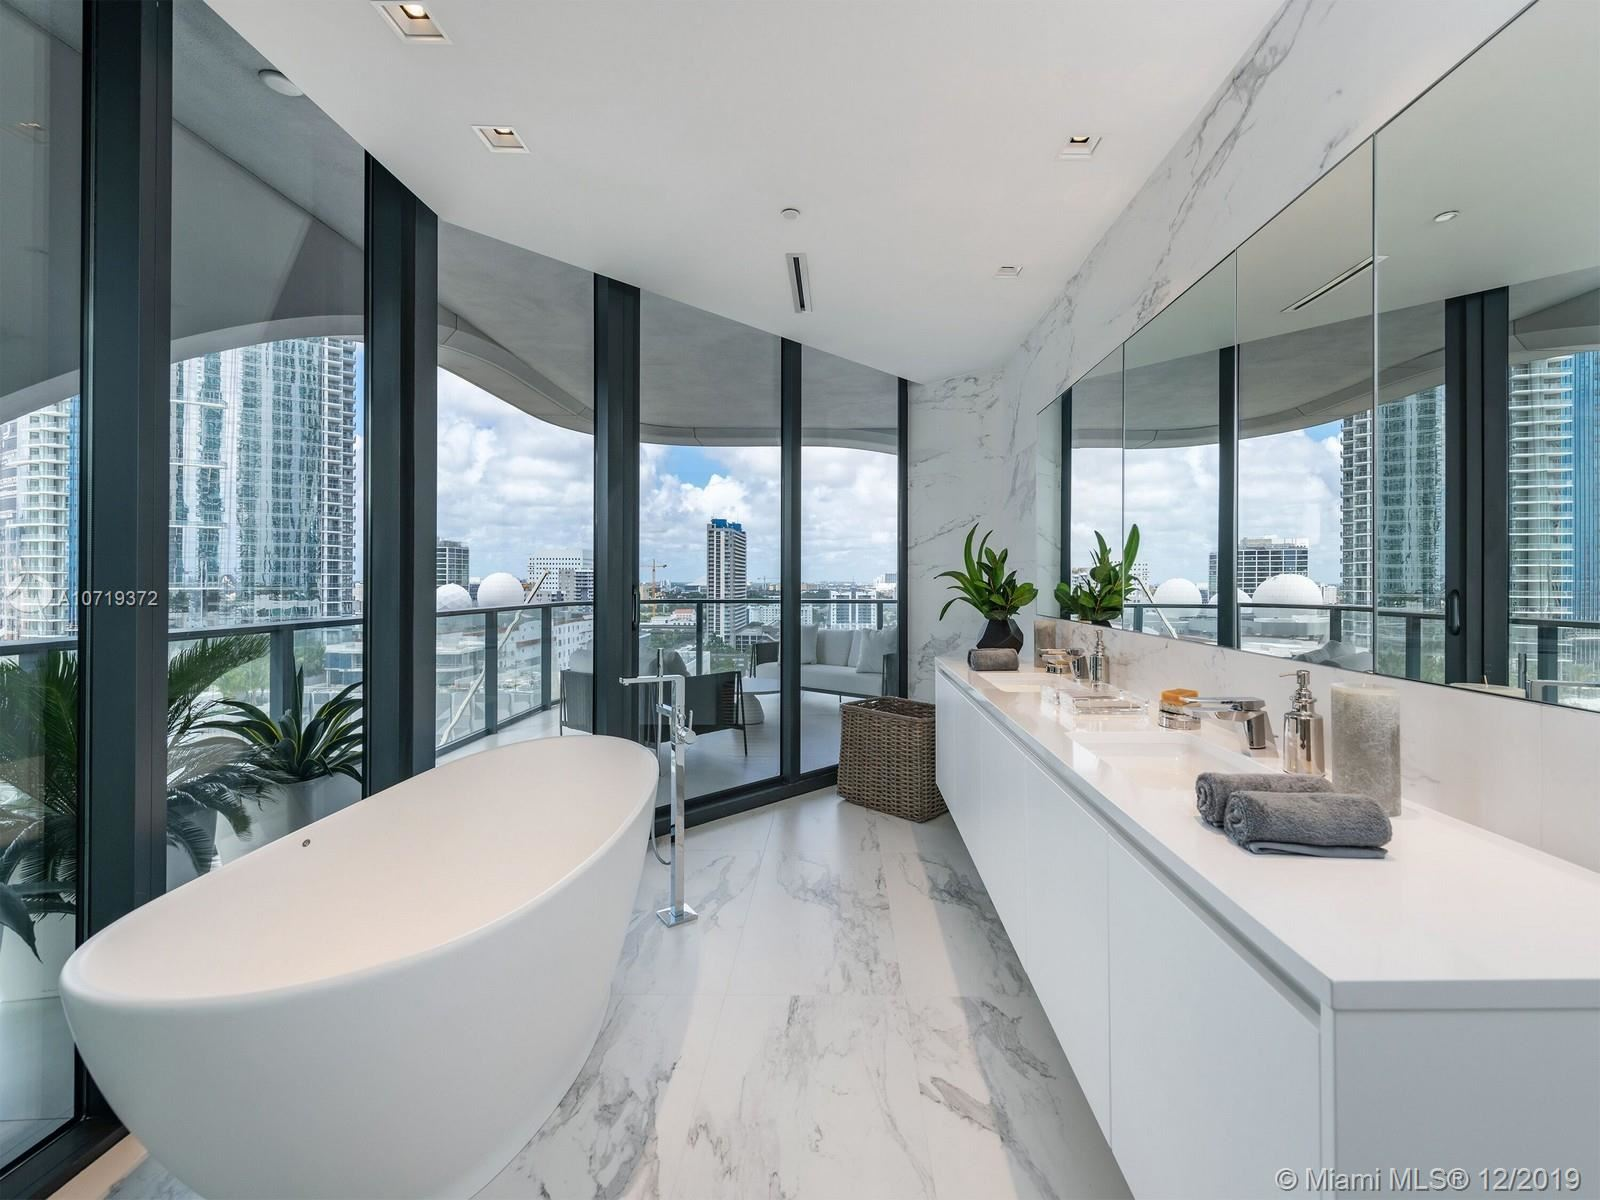 Photo 10 of Listing MLS a10719372 in 1000 Biscayne Blvd #5901 Miami FL 33132